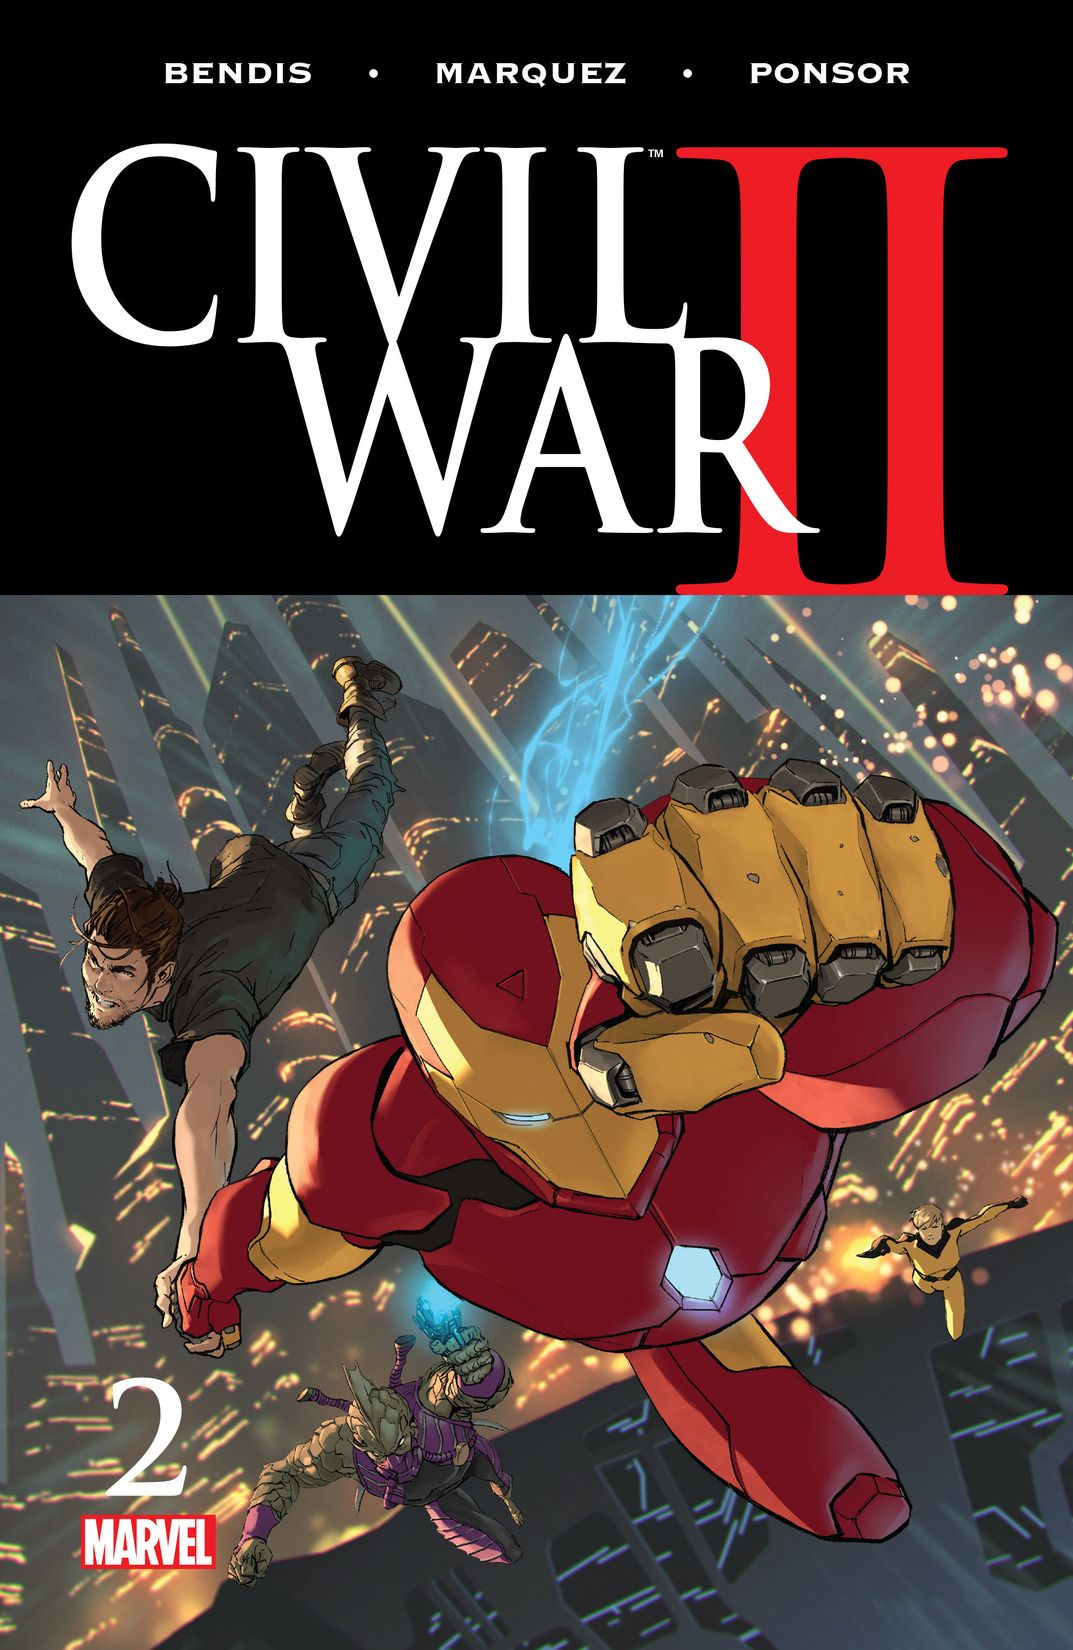 civil war 2 issue 2